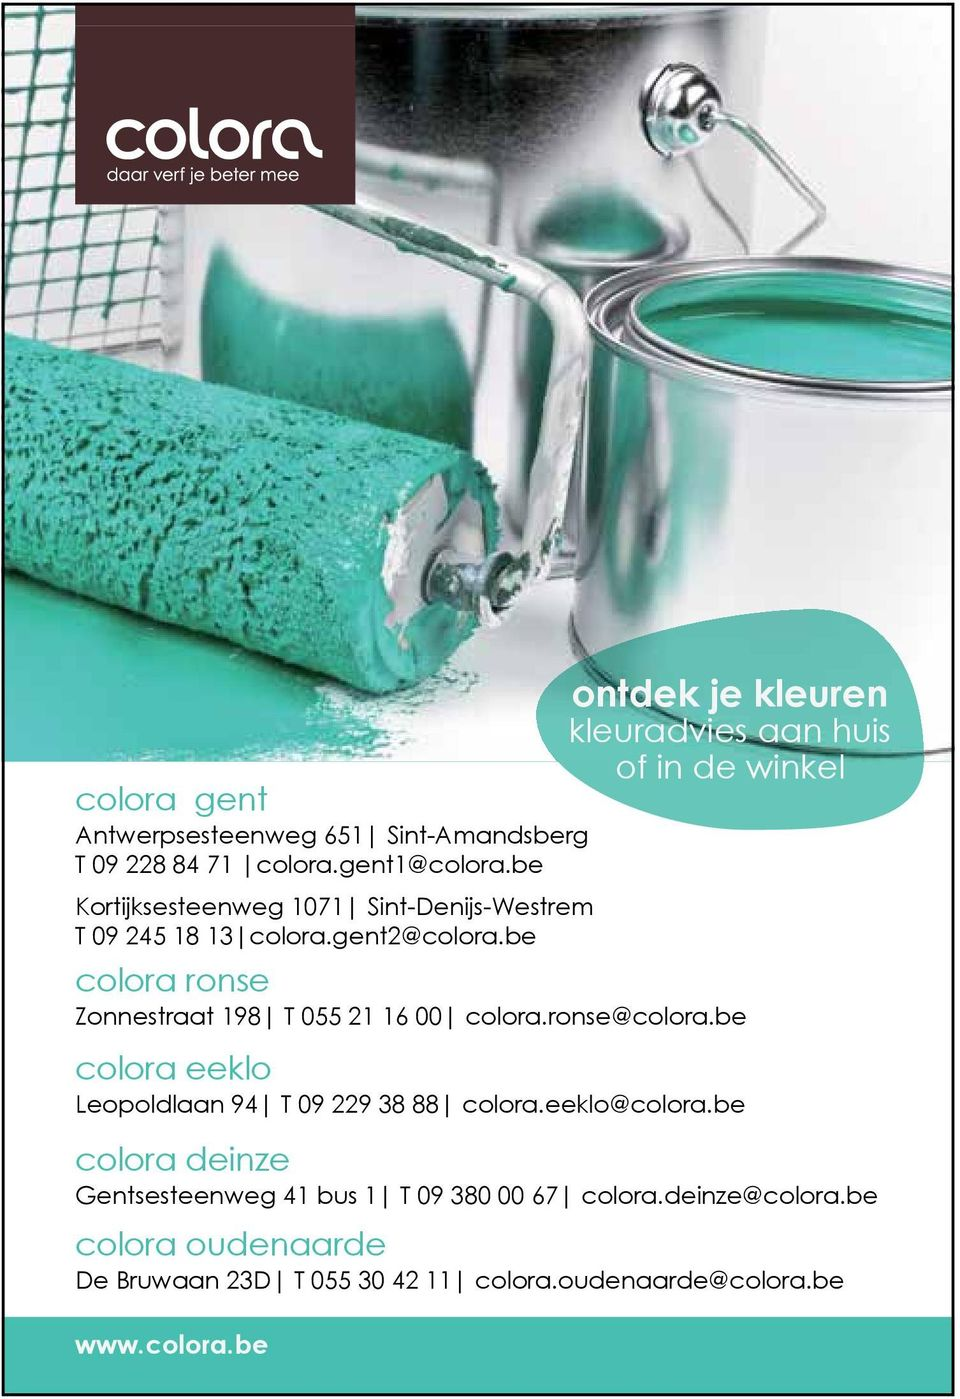 be colora ronse Zonnestraat 198 T 055 21 16 00 colora.ronse@colora.be colora eeklo Leopoldlaan 94 T 09 229 38 88 colora.